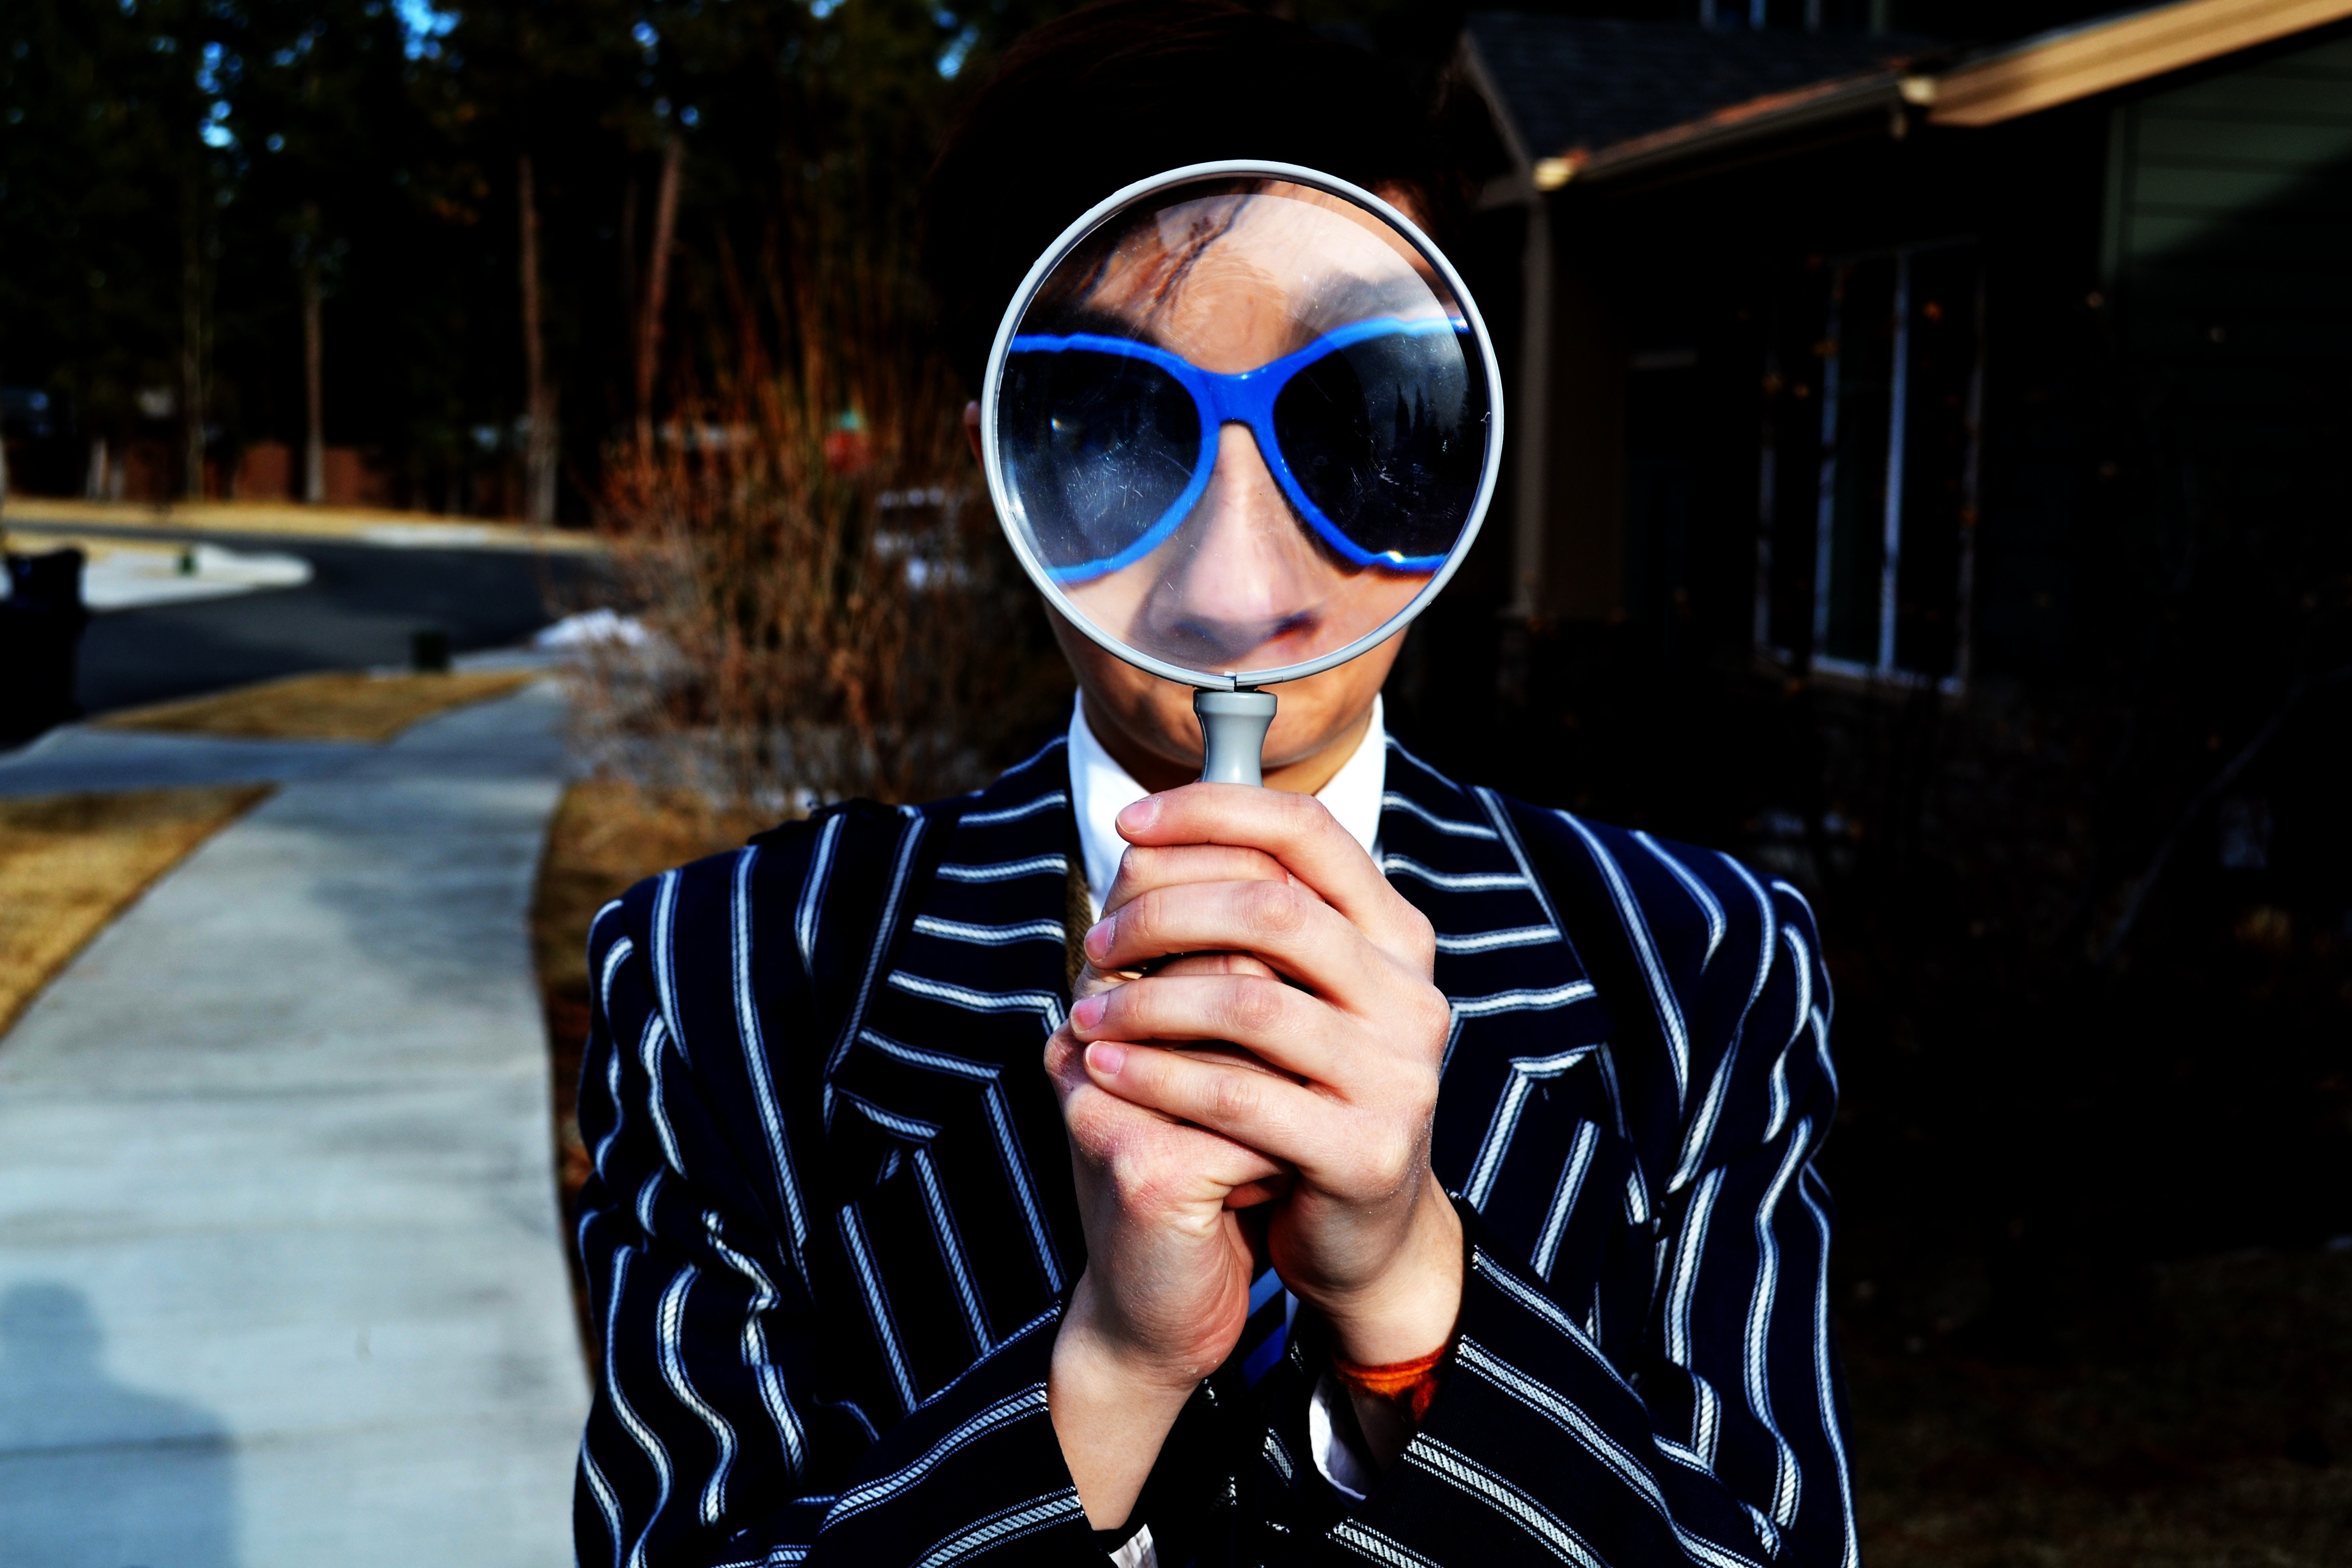 Man-wth-magnifying-glass.jpg